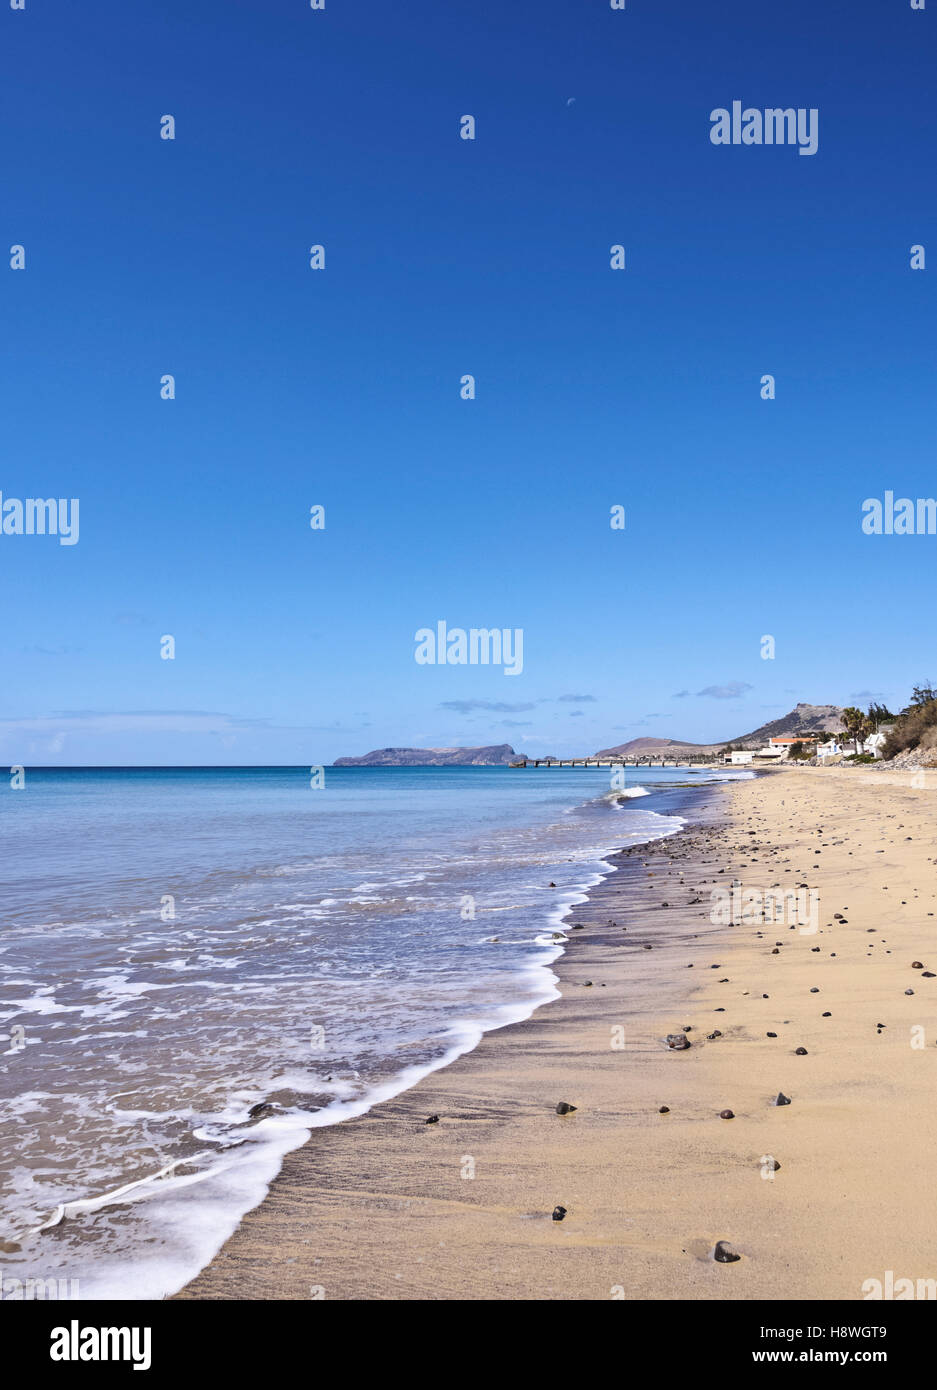 Portugal, Madeira Islands, Porto Santo, View of the sandy beach. - Stock Image